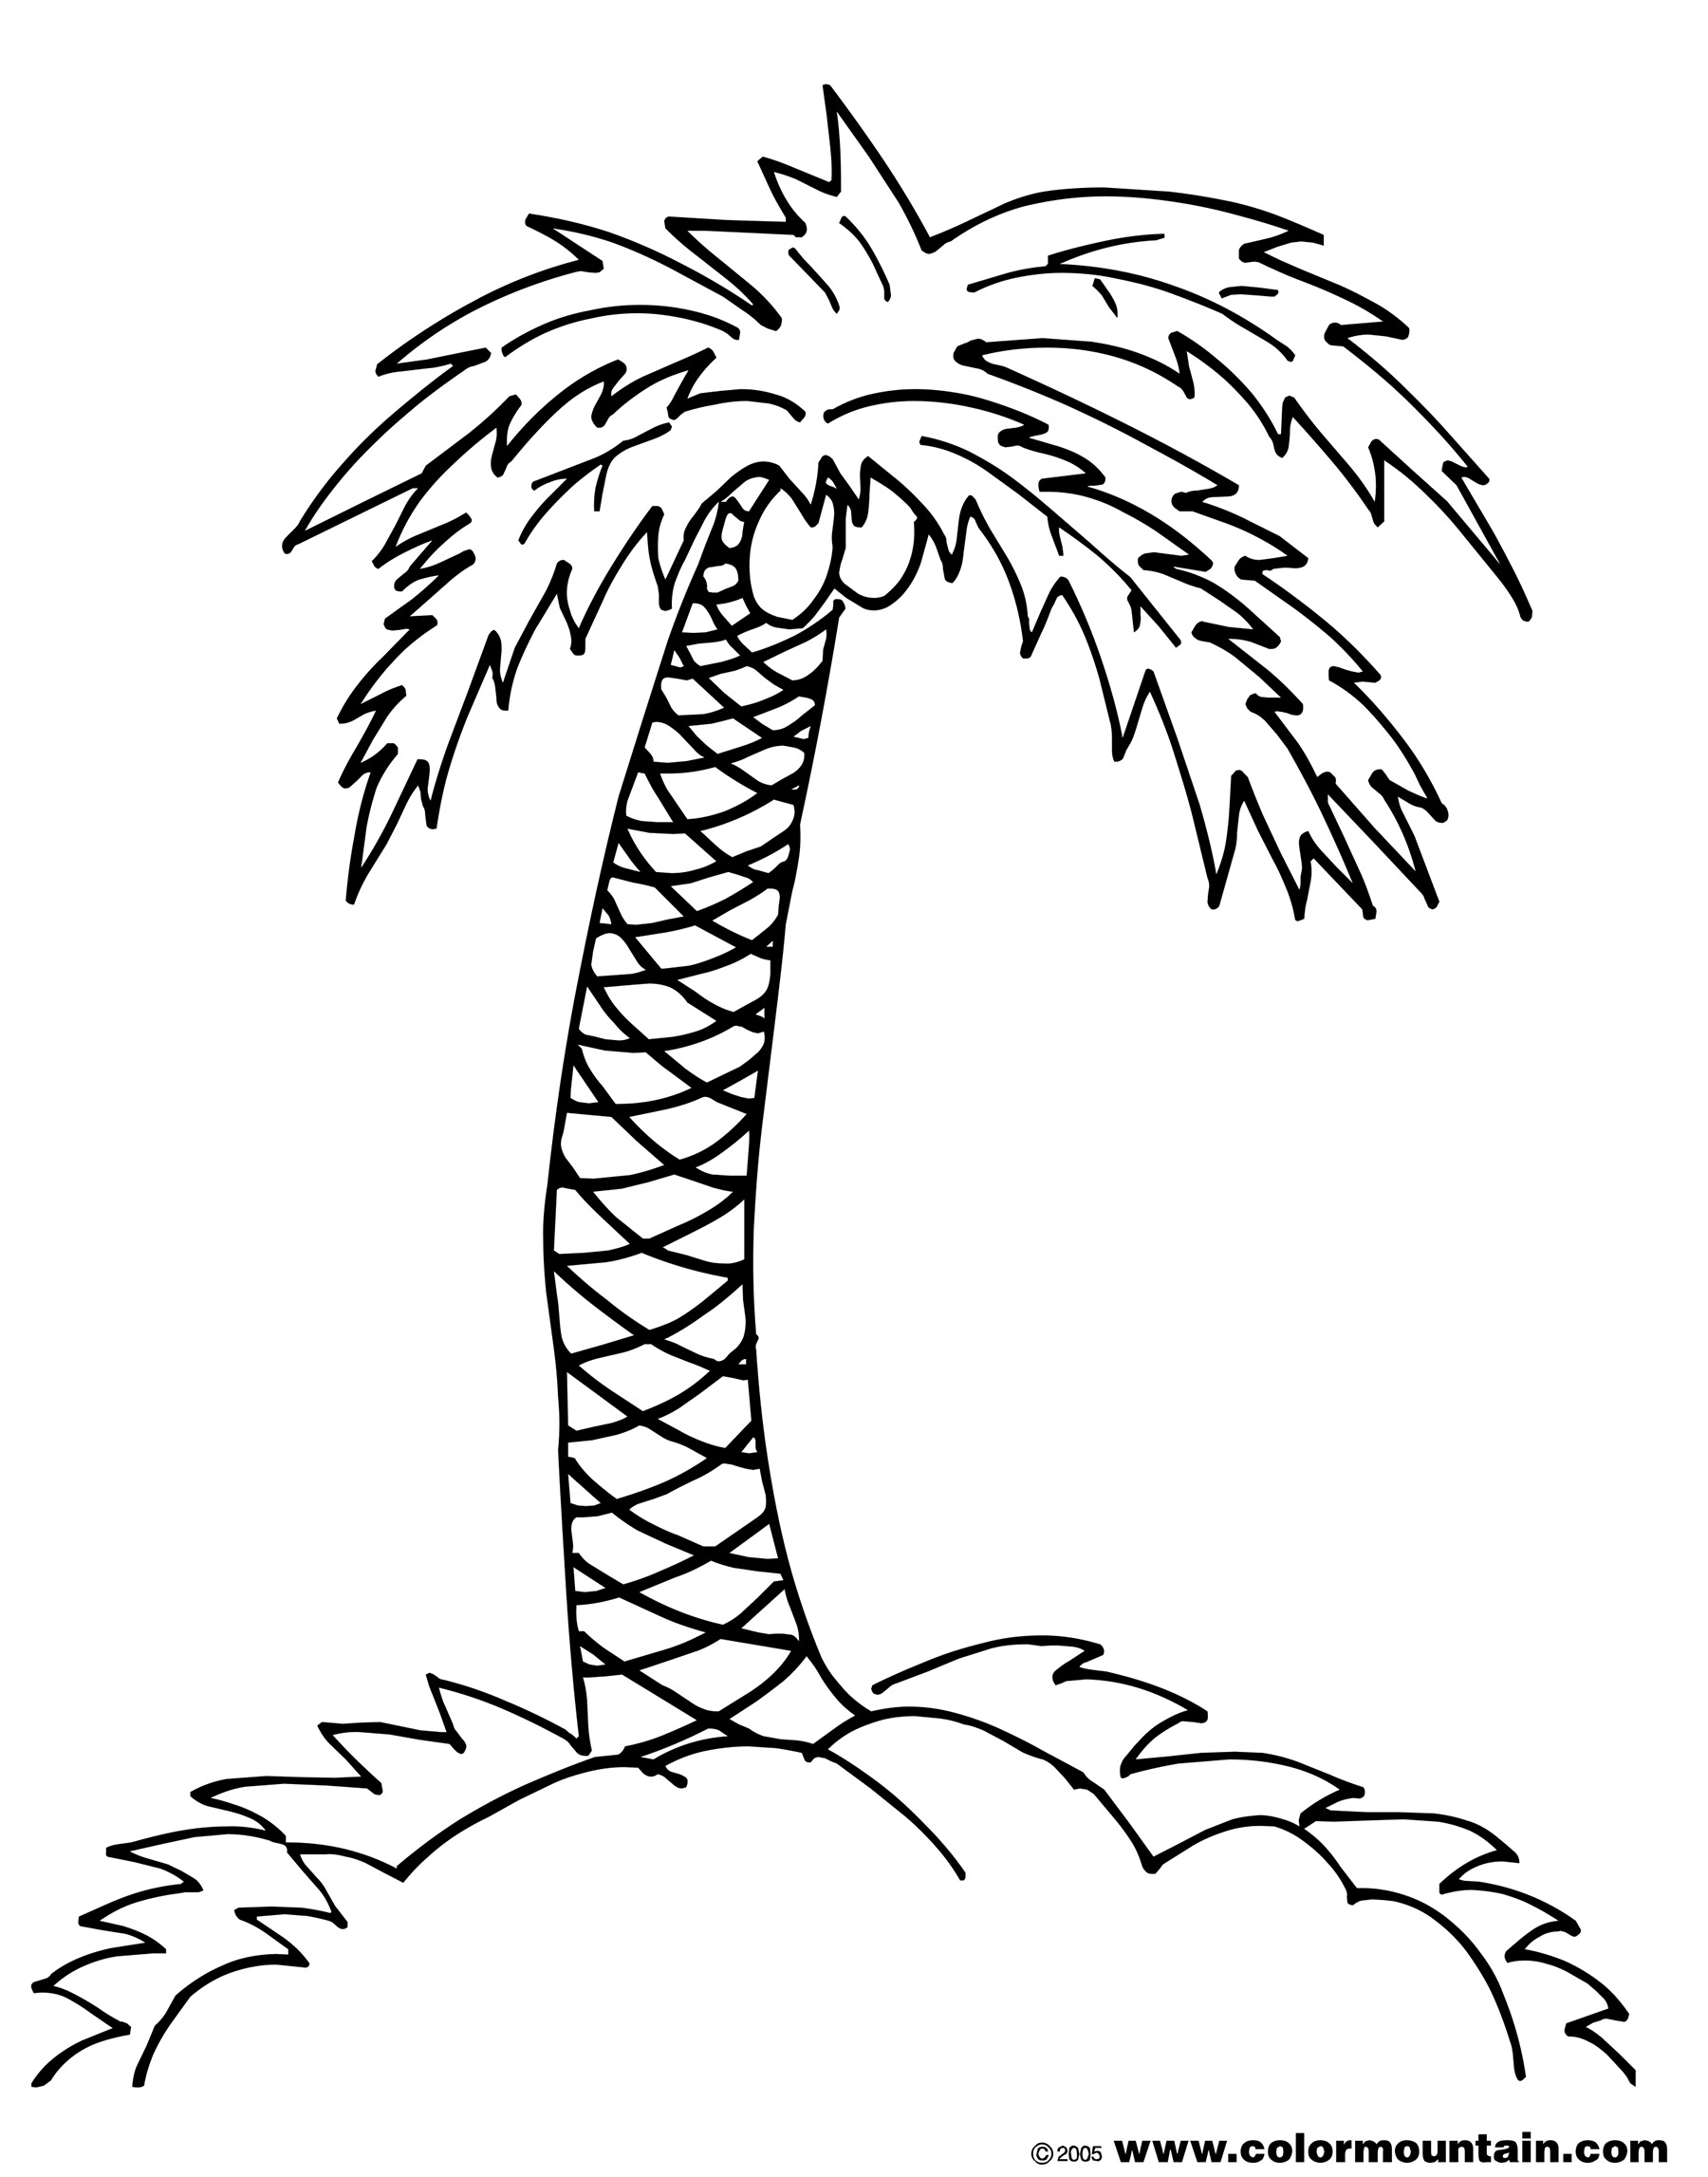 jungle coloring pages free | Description of Jungle Trees Coloring ... | 2294x1800